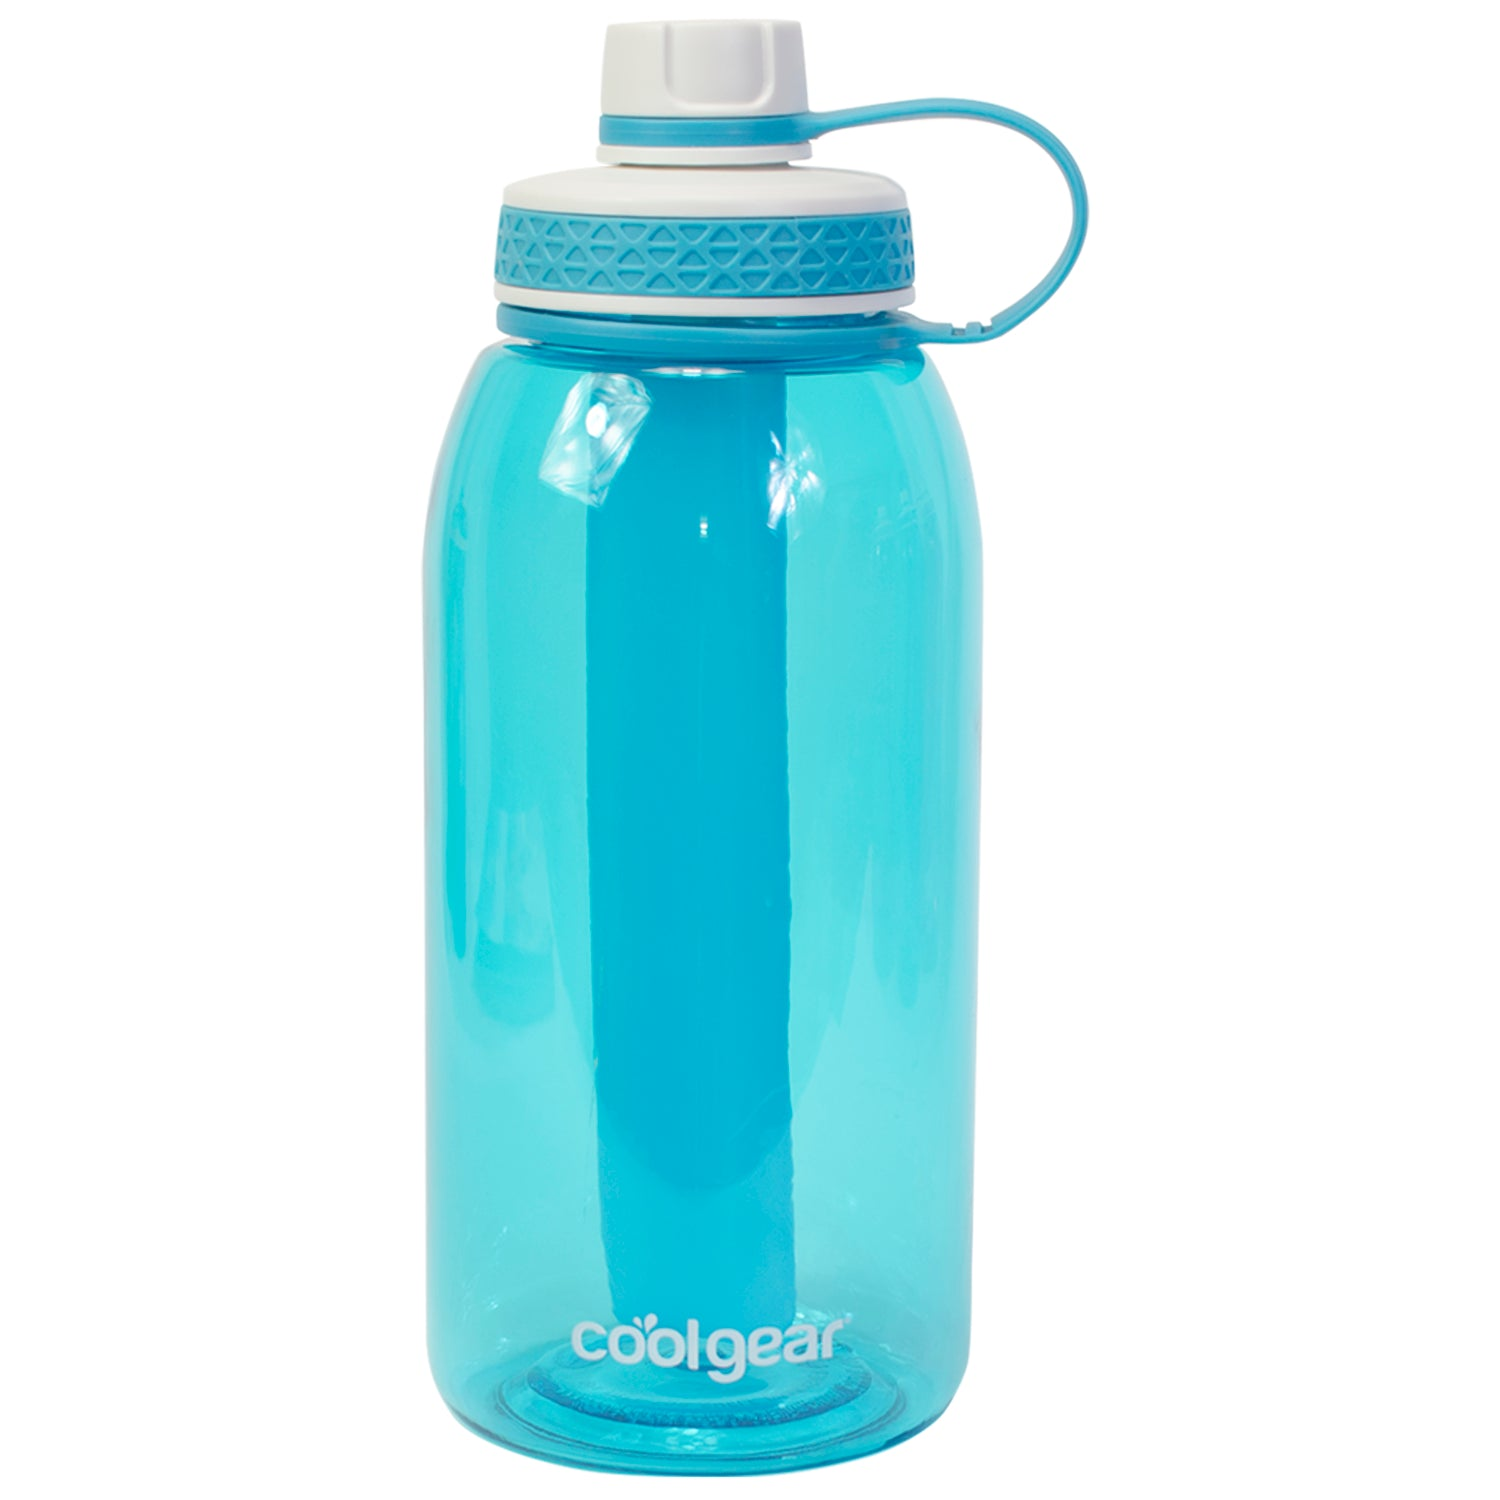 31c15042d6 Water Bottles | Stainless Steel, Reusable, Large Volume | Cool Gear